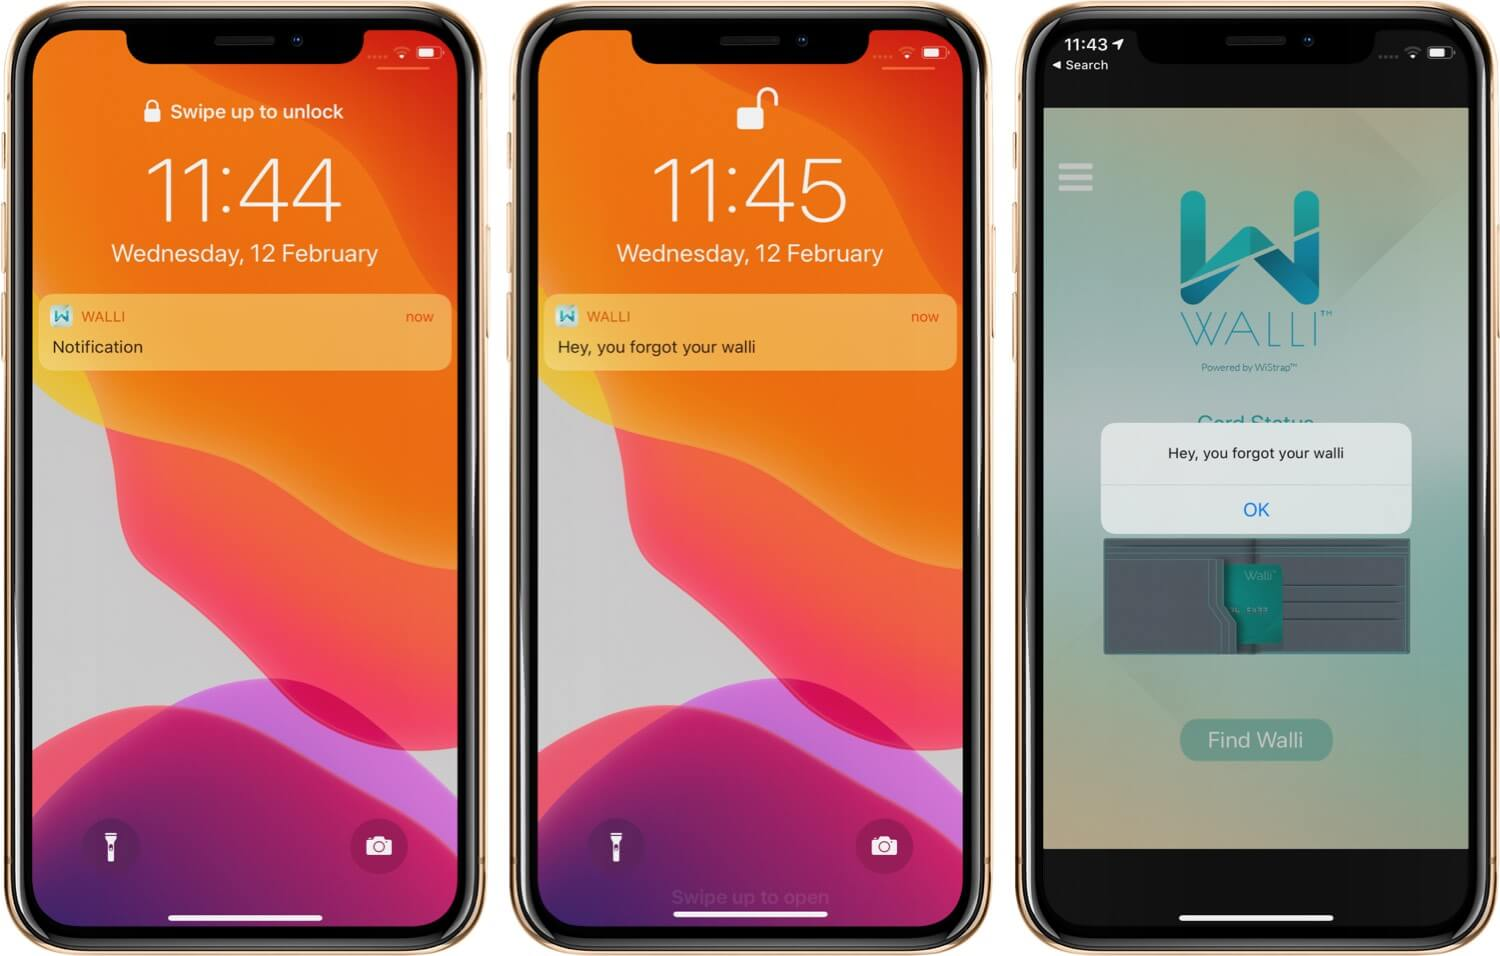 Get Walli App Notification on iPhone When You Leave Your Wallet